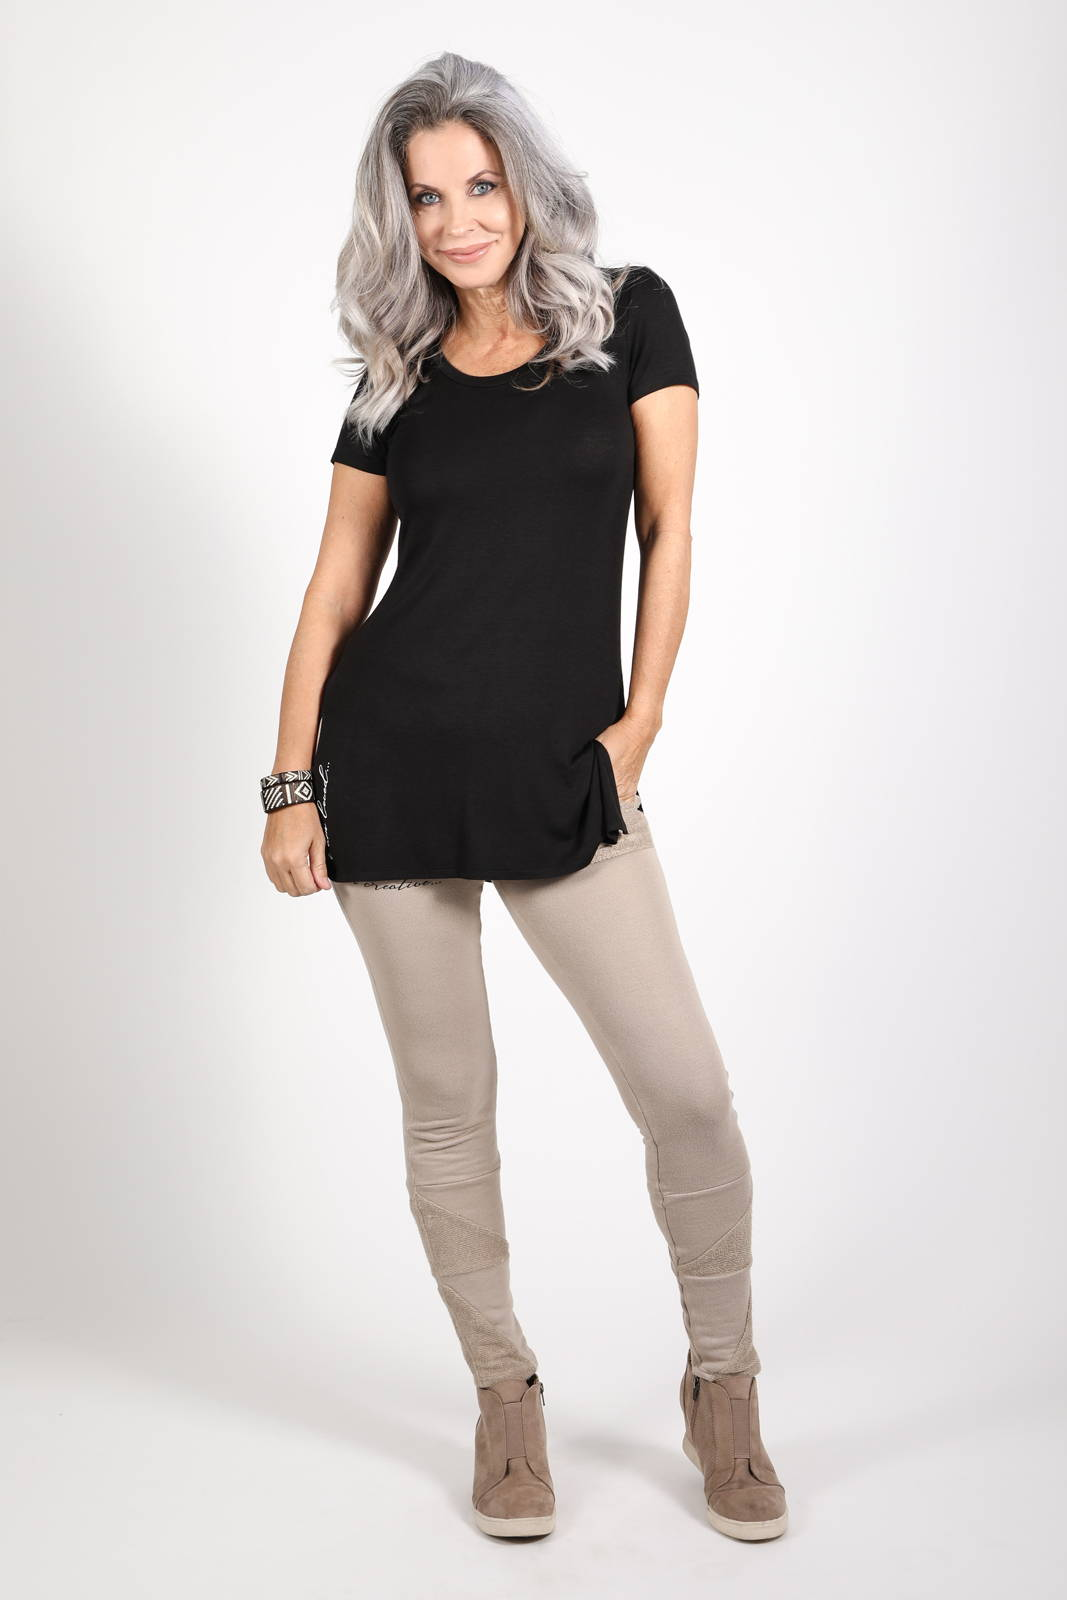 Model wearing the Dawl Tunic in black and the Ciana Terry Jogger in Light Tan